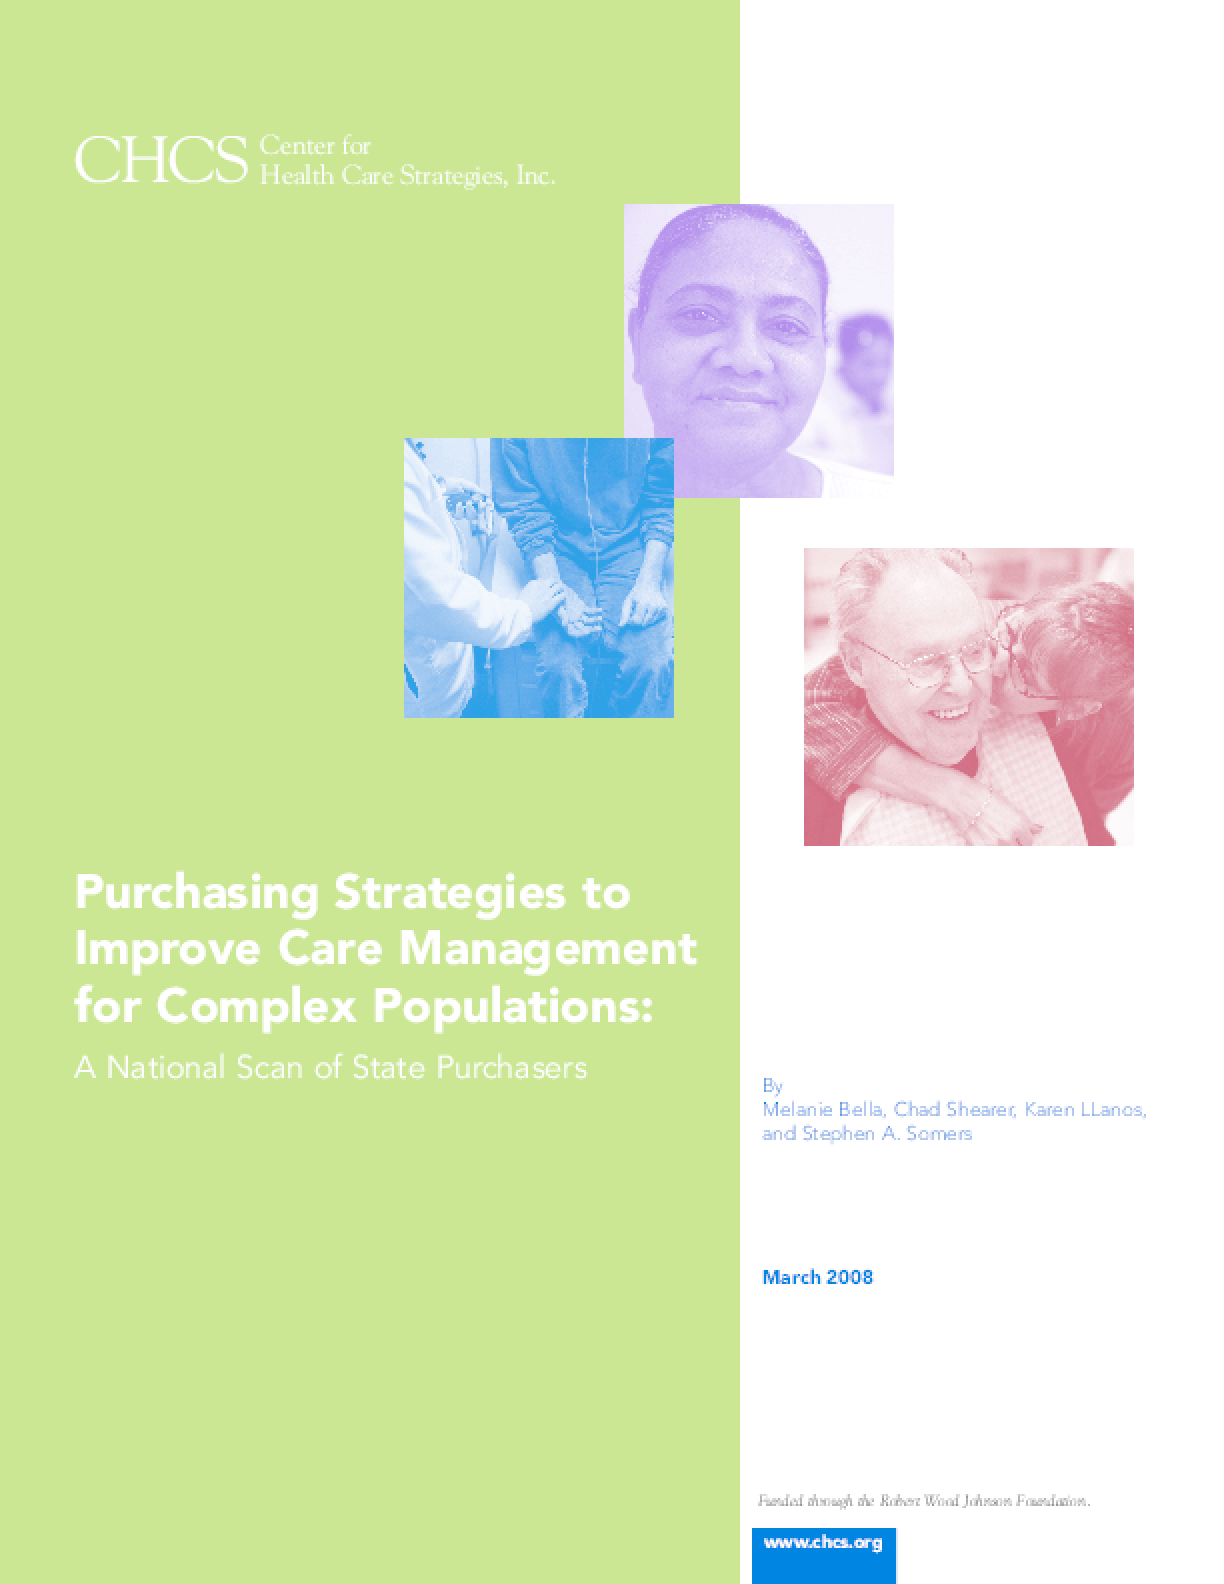 Purchasing Strategies to Improve Care Management for Complex Populations: A National Scan of State Purchasers